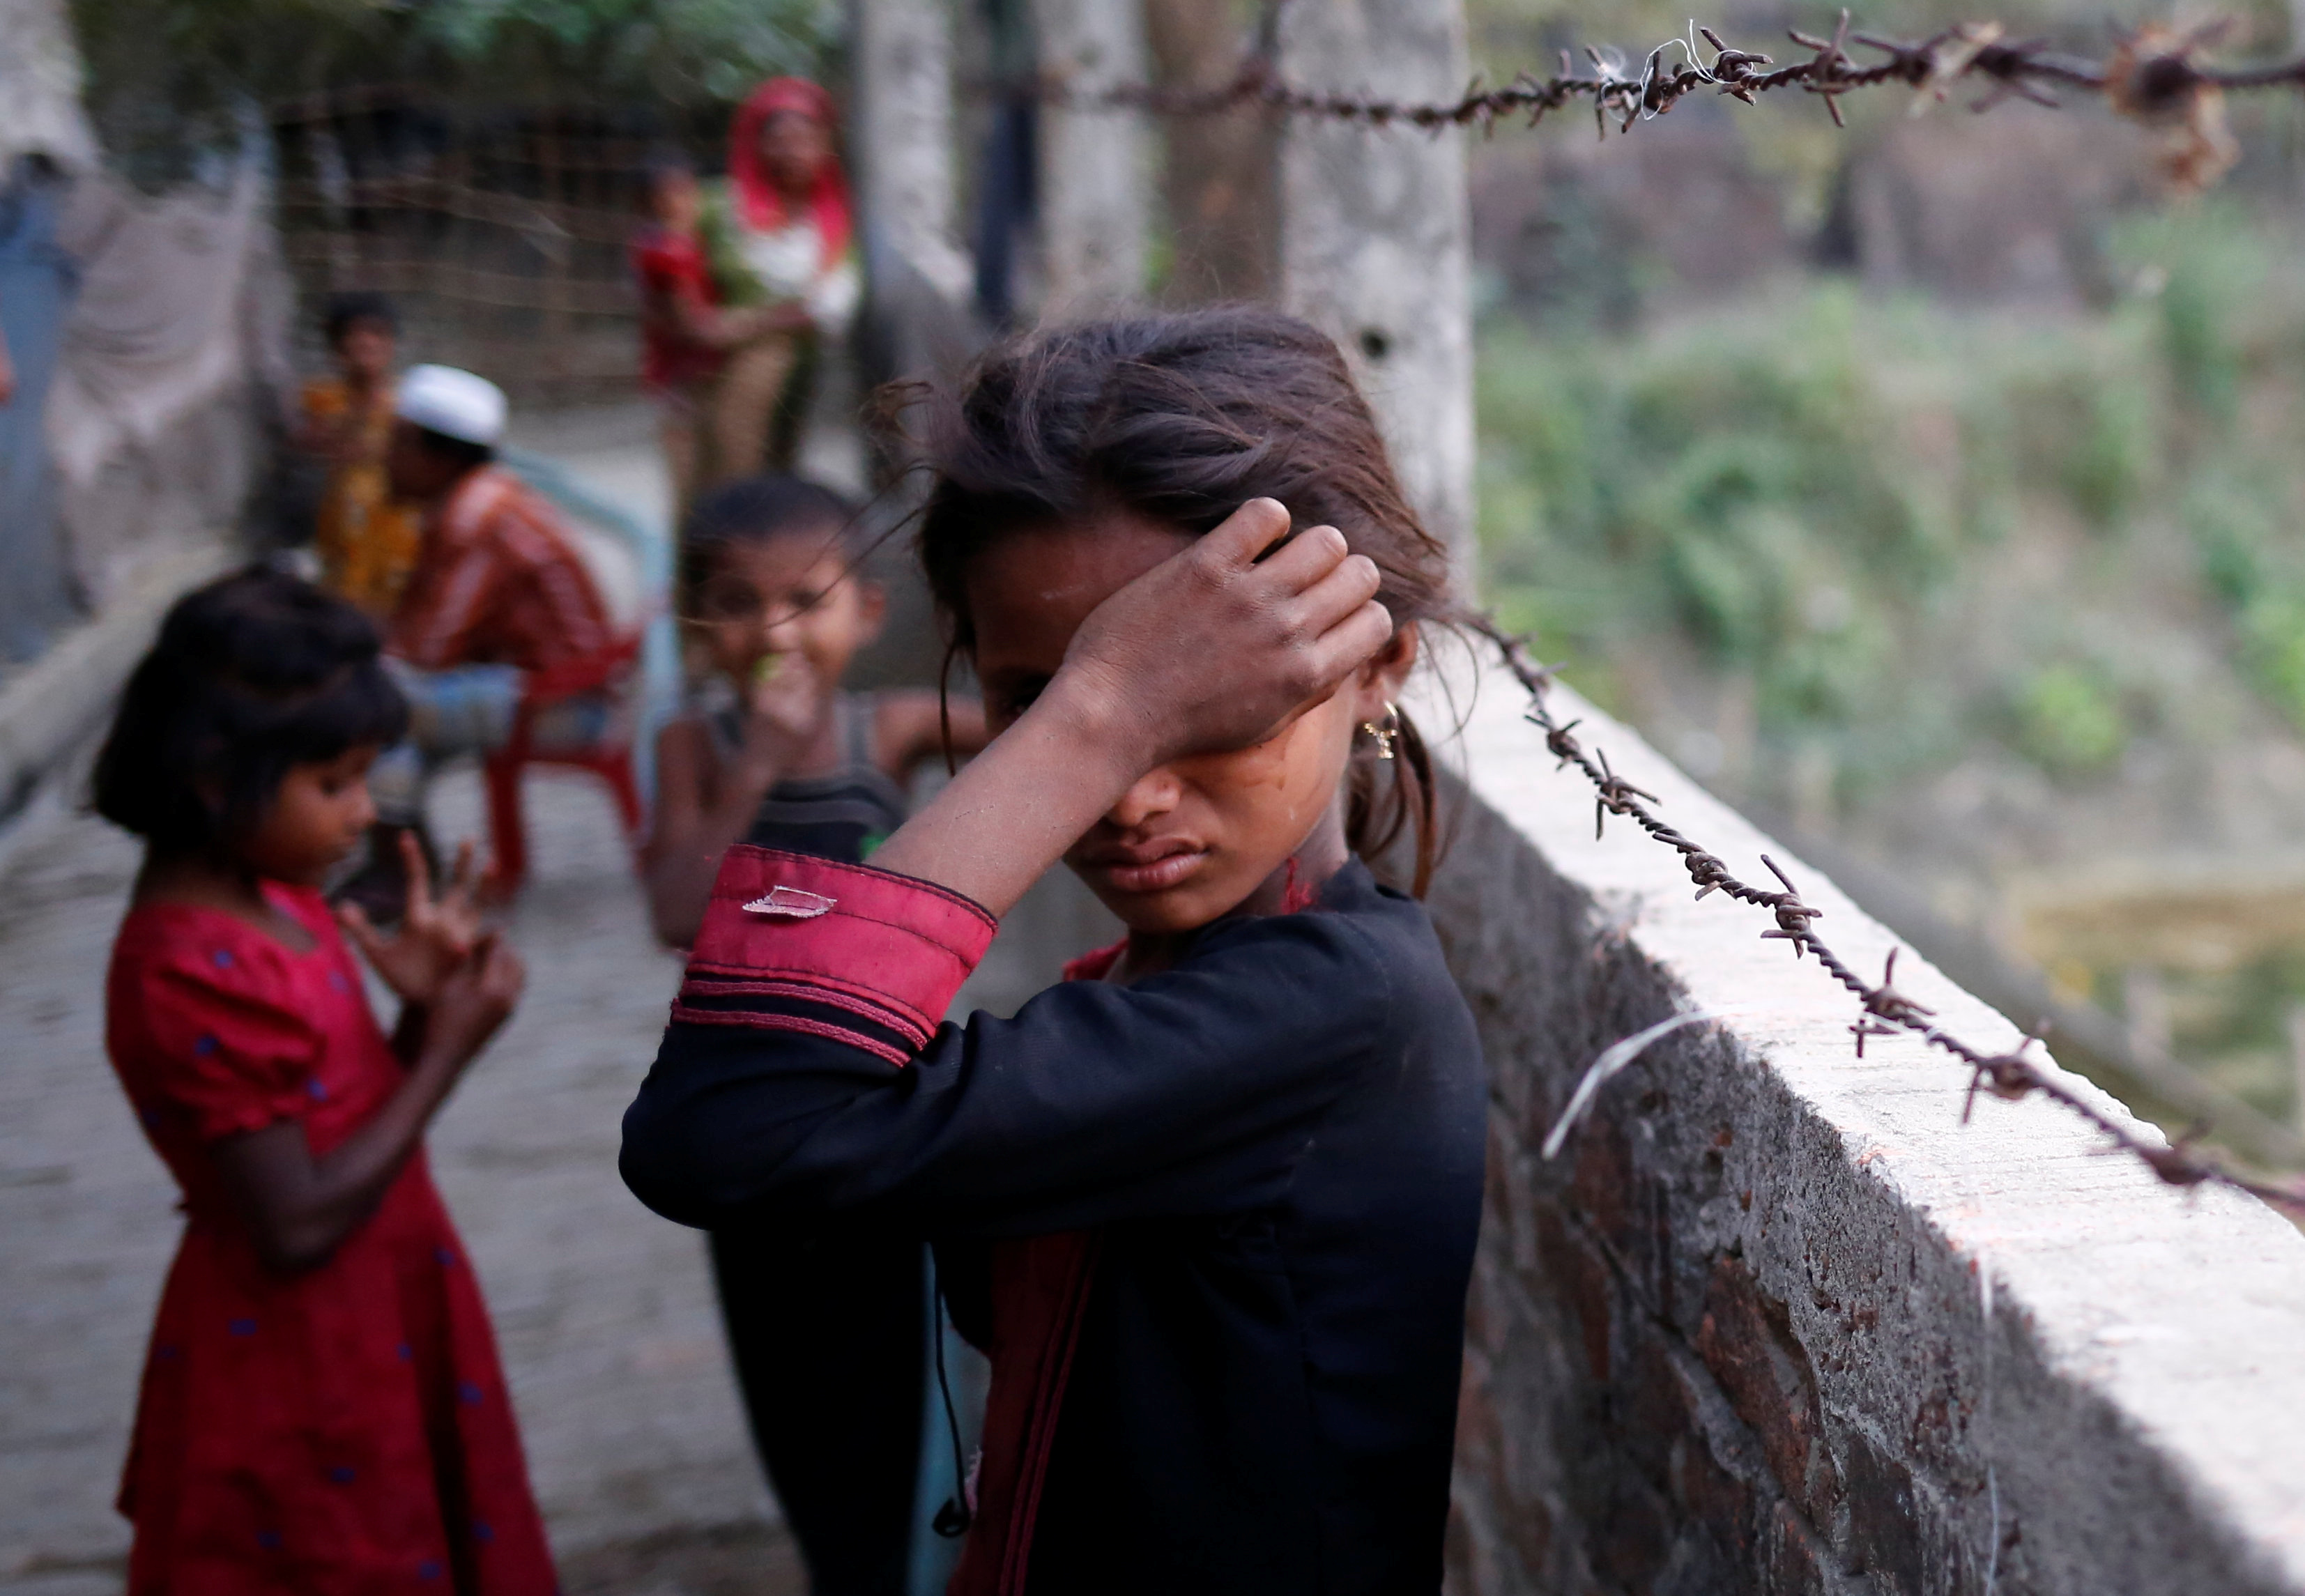 A Rohingya refugee girl wipes her eyes as she cries at Leda Unregistered Refugee Camp in Teknaf, Bangladesh, February 15, 2017. REUTERS/Mohammad Ponir Hossain      TPX IMAGES OF THE DAY - RTSYTH2